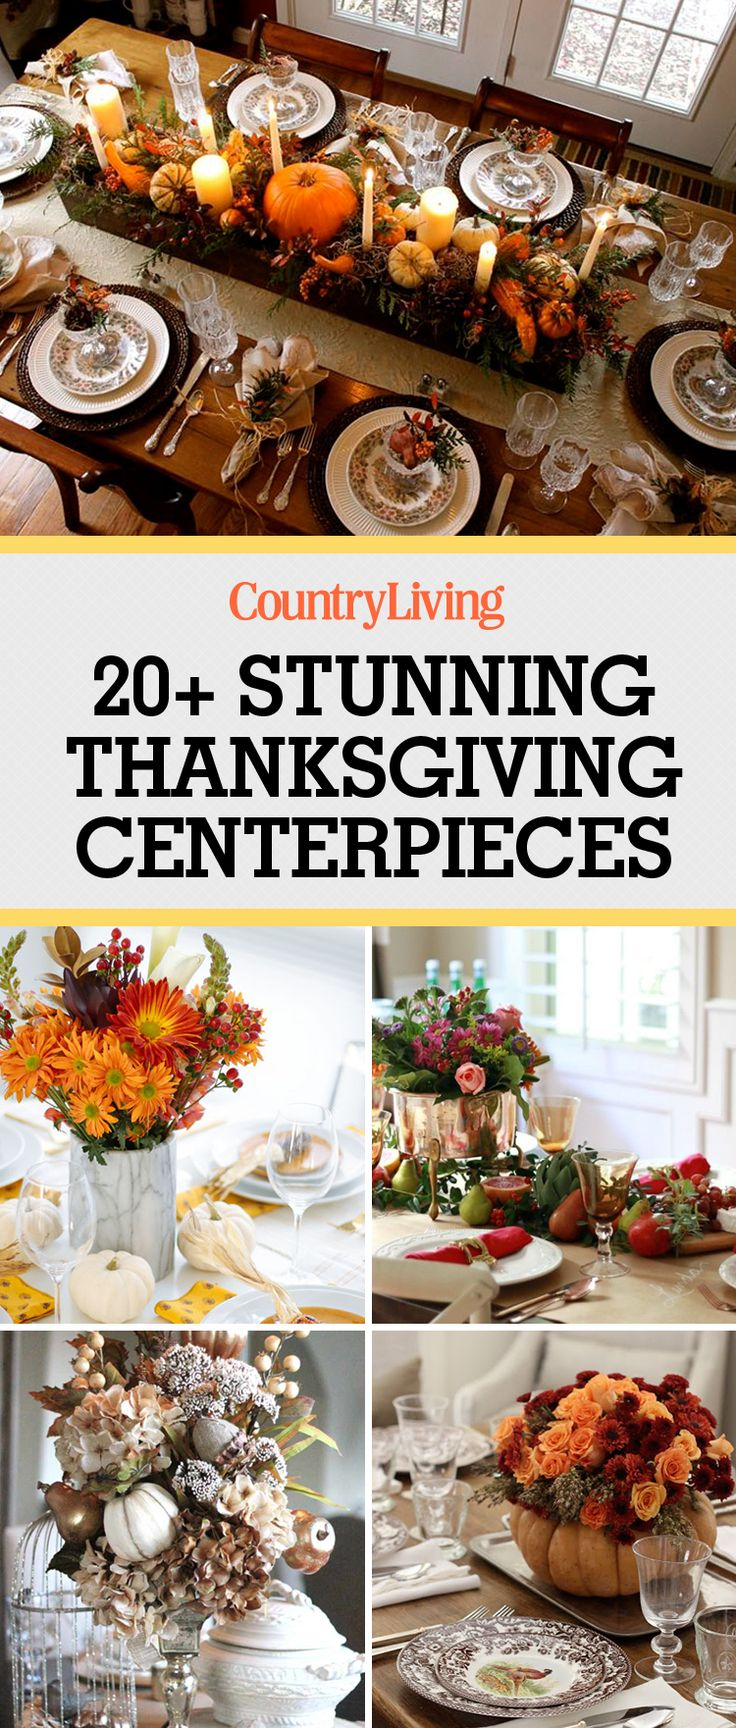 30 Thanksgiving Centerpieces That Will Make You Forget About The Turkey